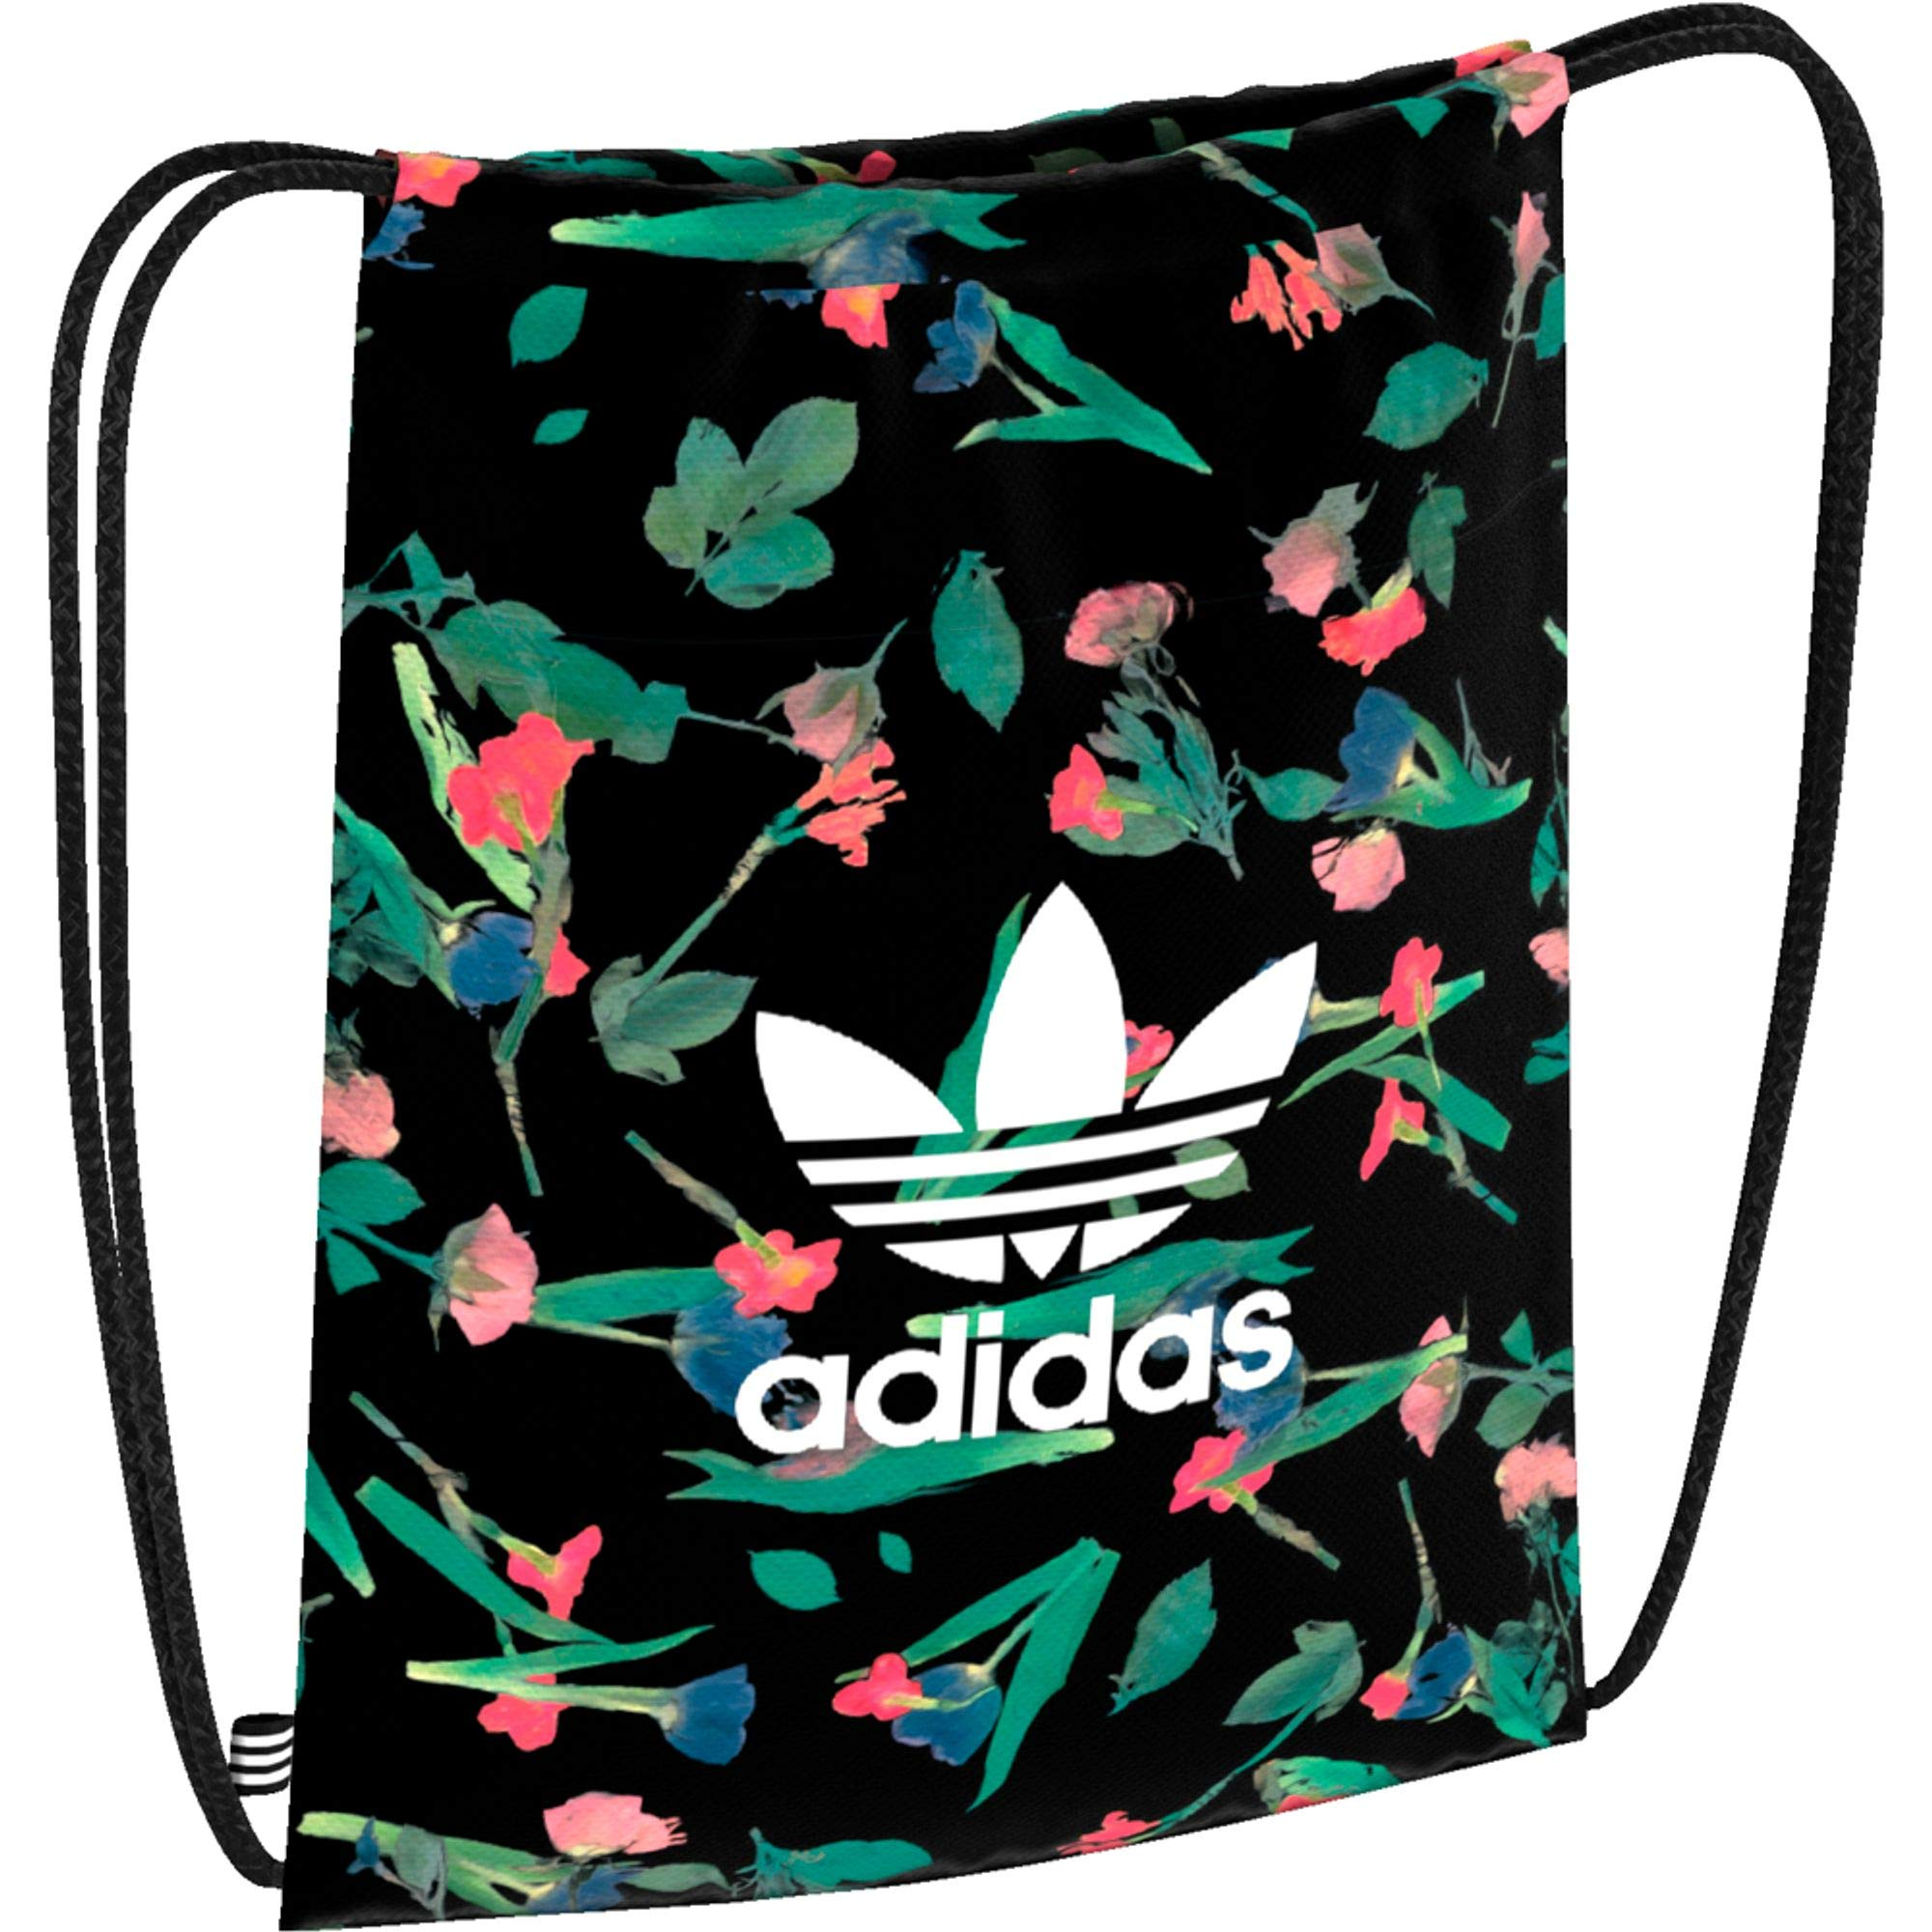 adidas Gymsack Backpacks, Mujer, Multicolor, NS: Amazon.es: Deportes y aire libre